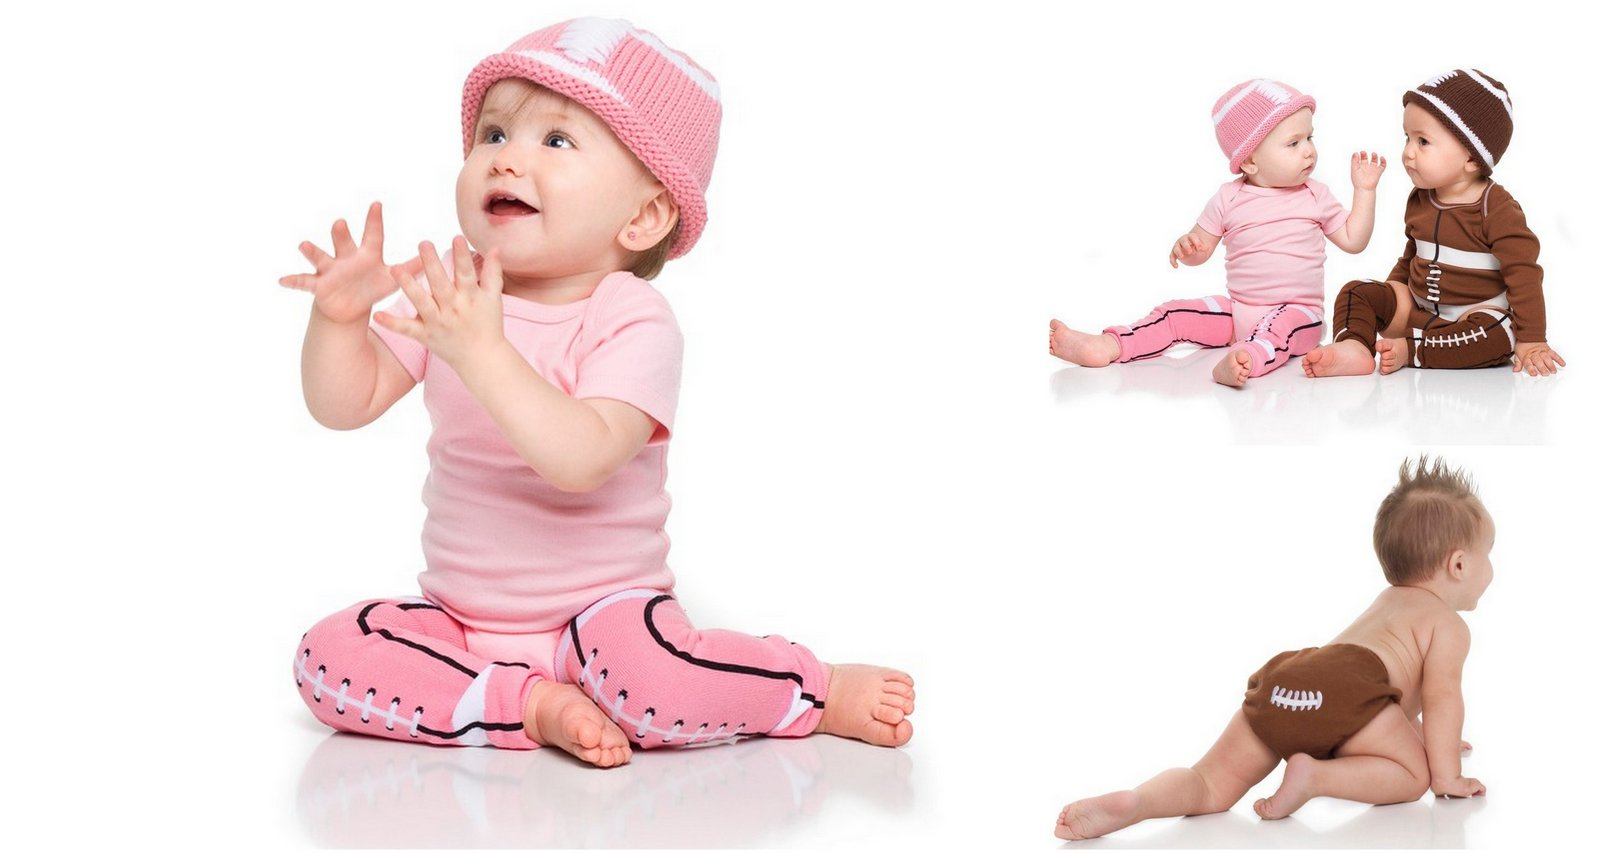 Baby Clothes: Valentine's Day gifts for the little ones!